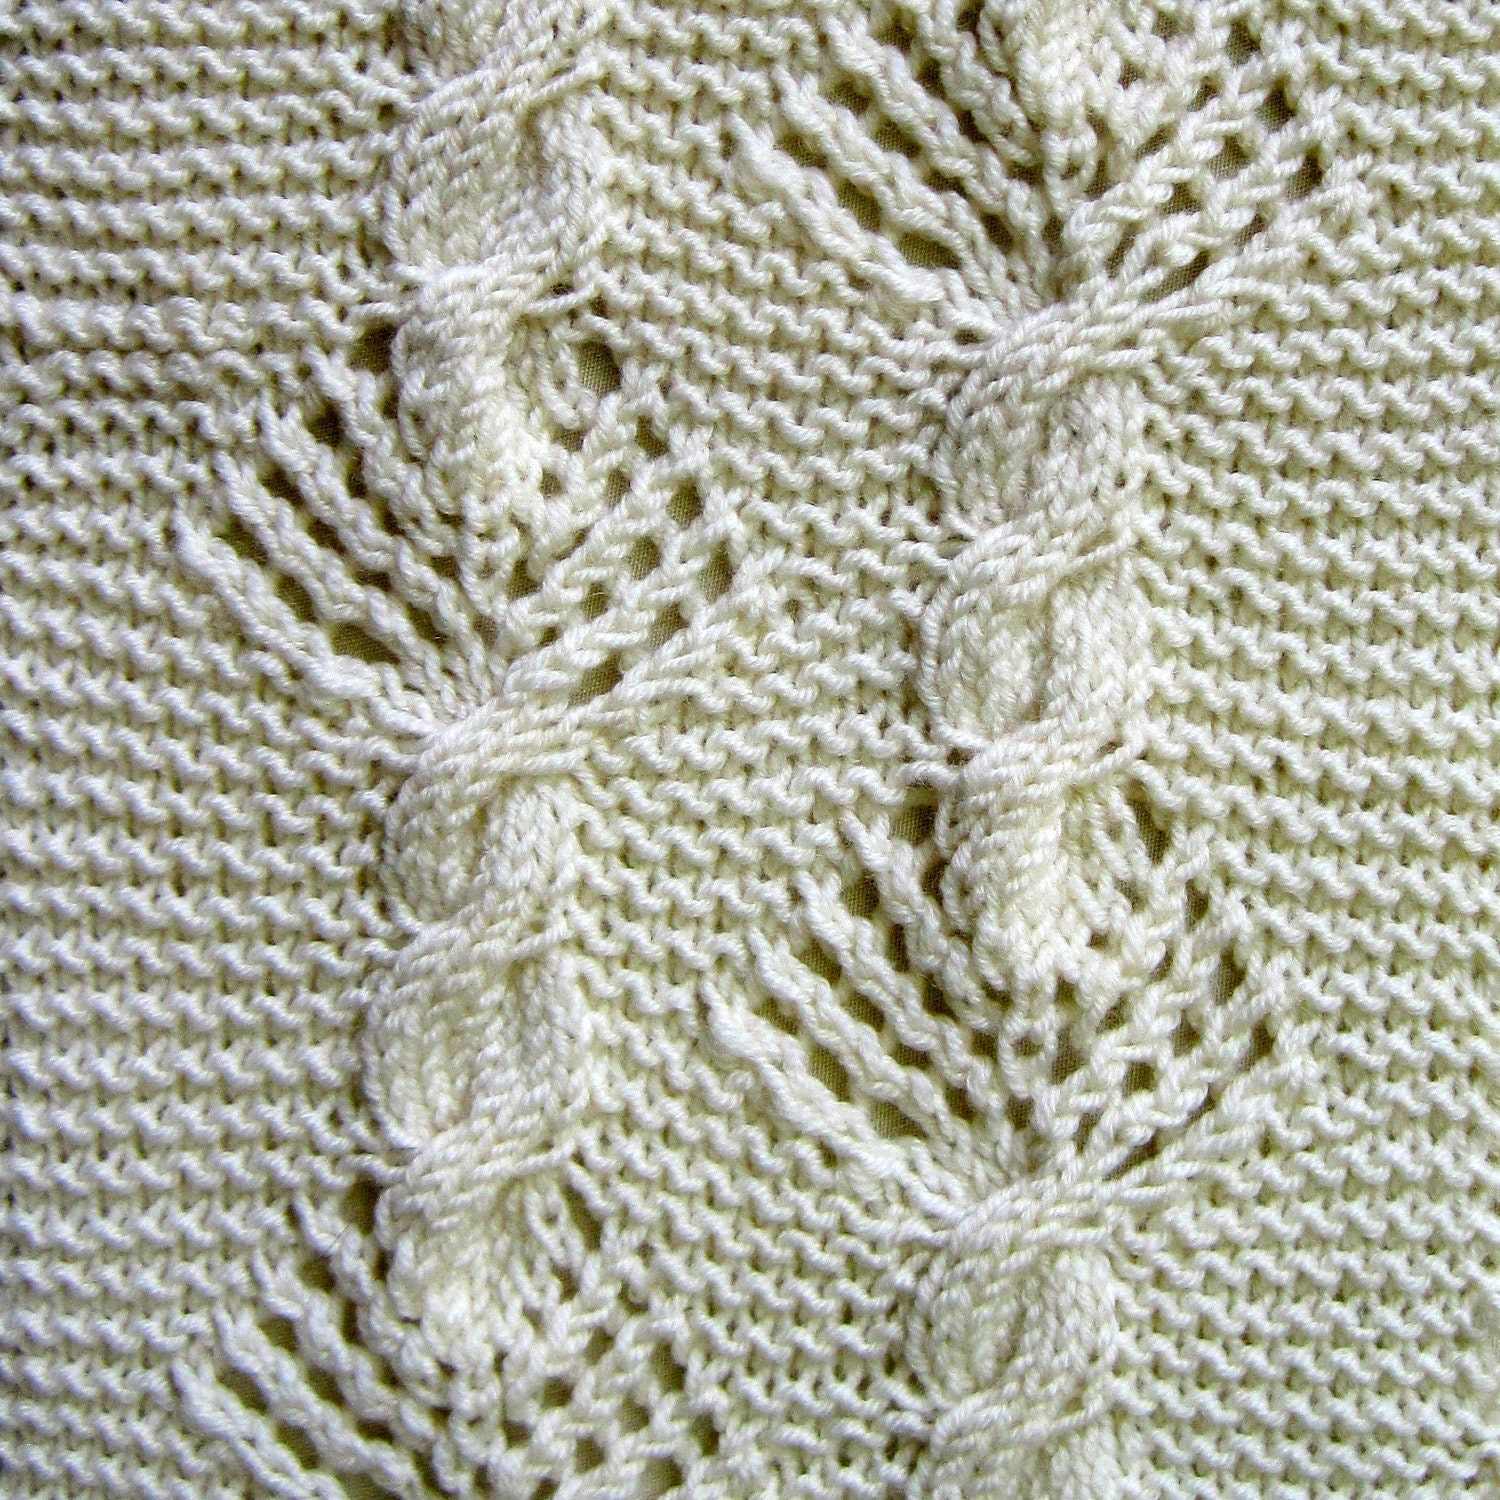 Knitting Pattern For Sampler Scarf : Knit Scarf Pattern: Lace Sampler Scarf / 2